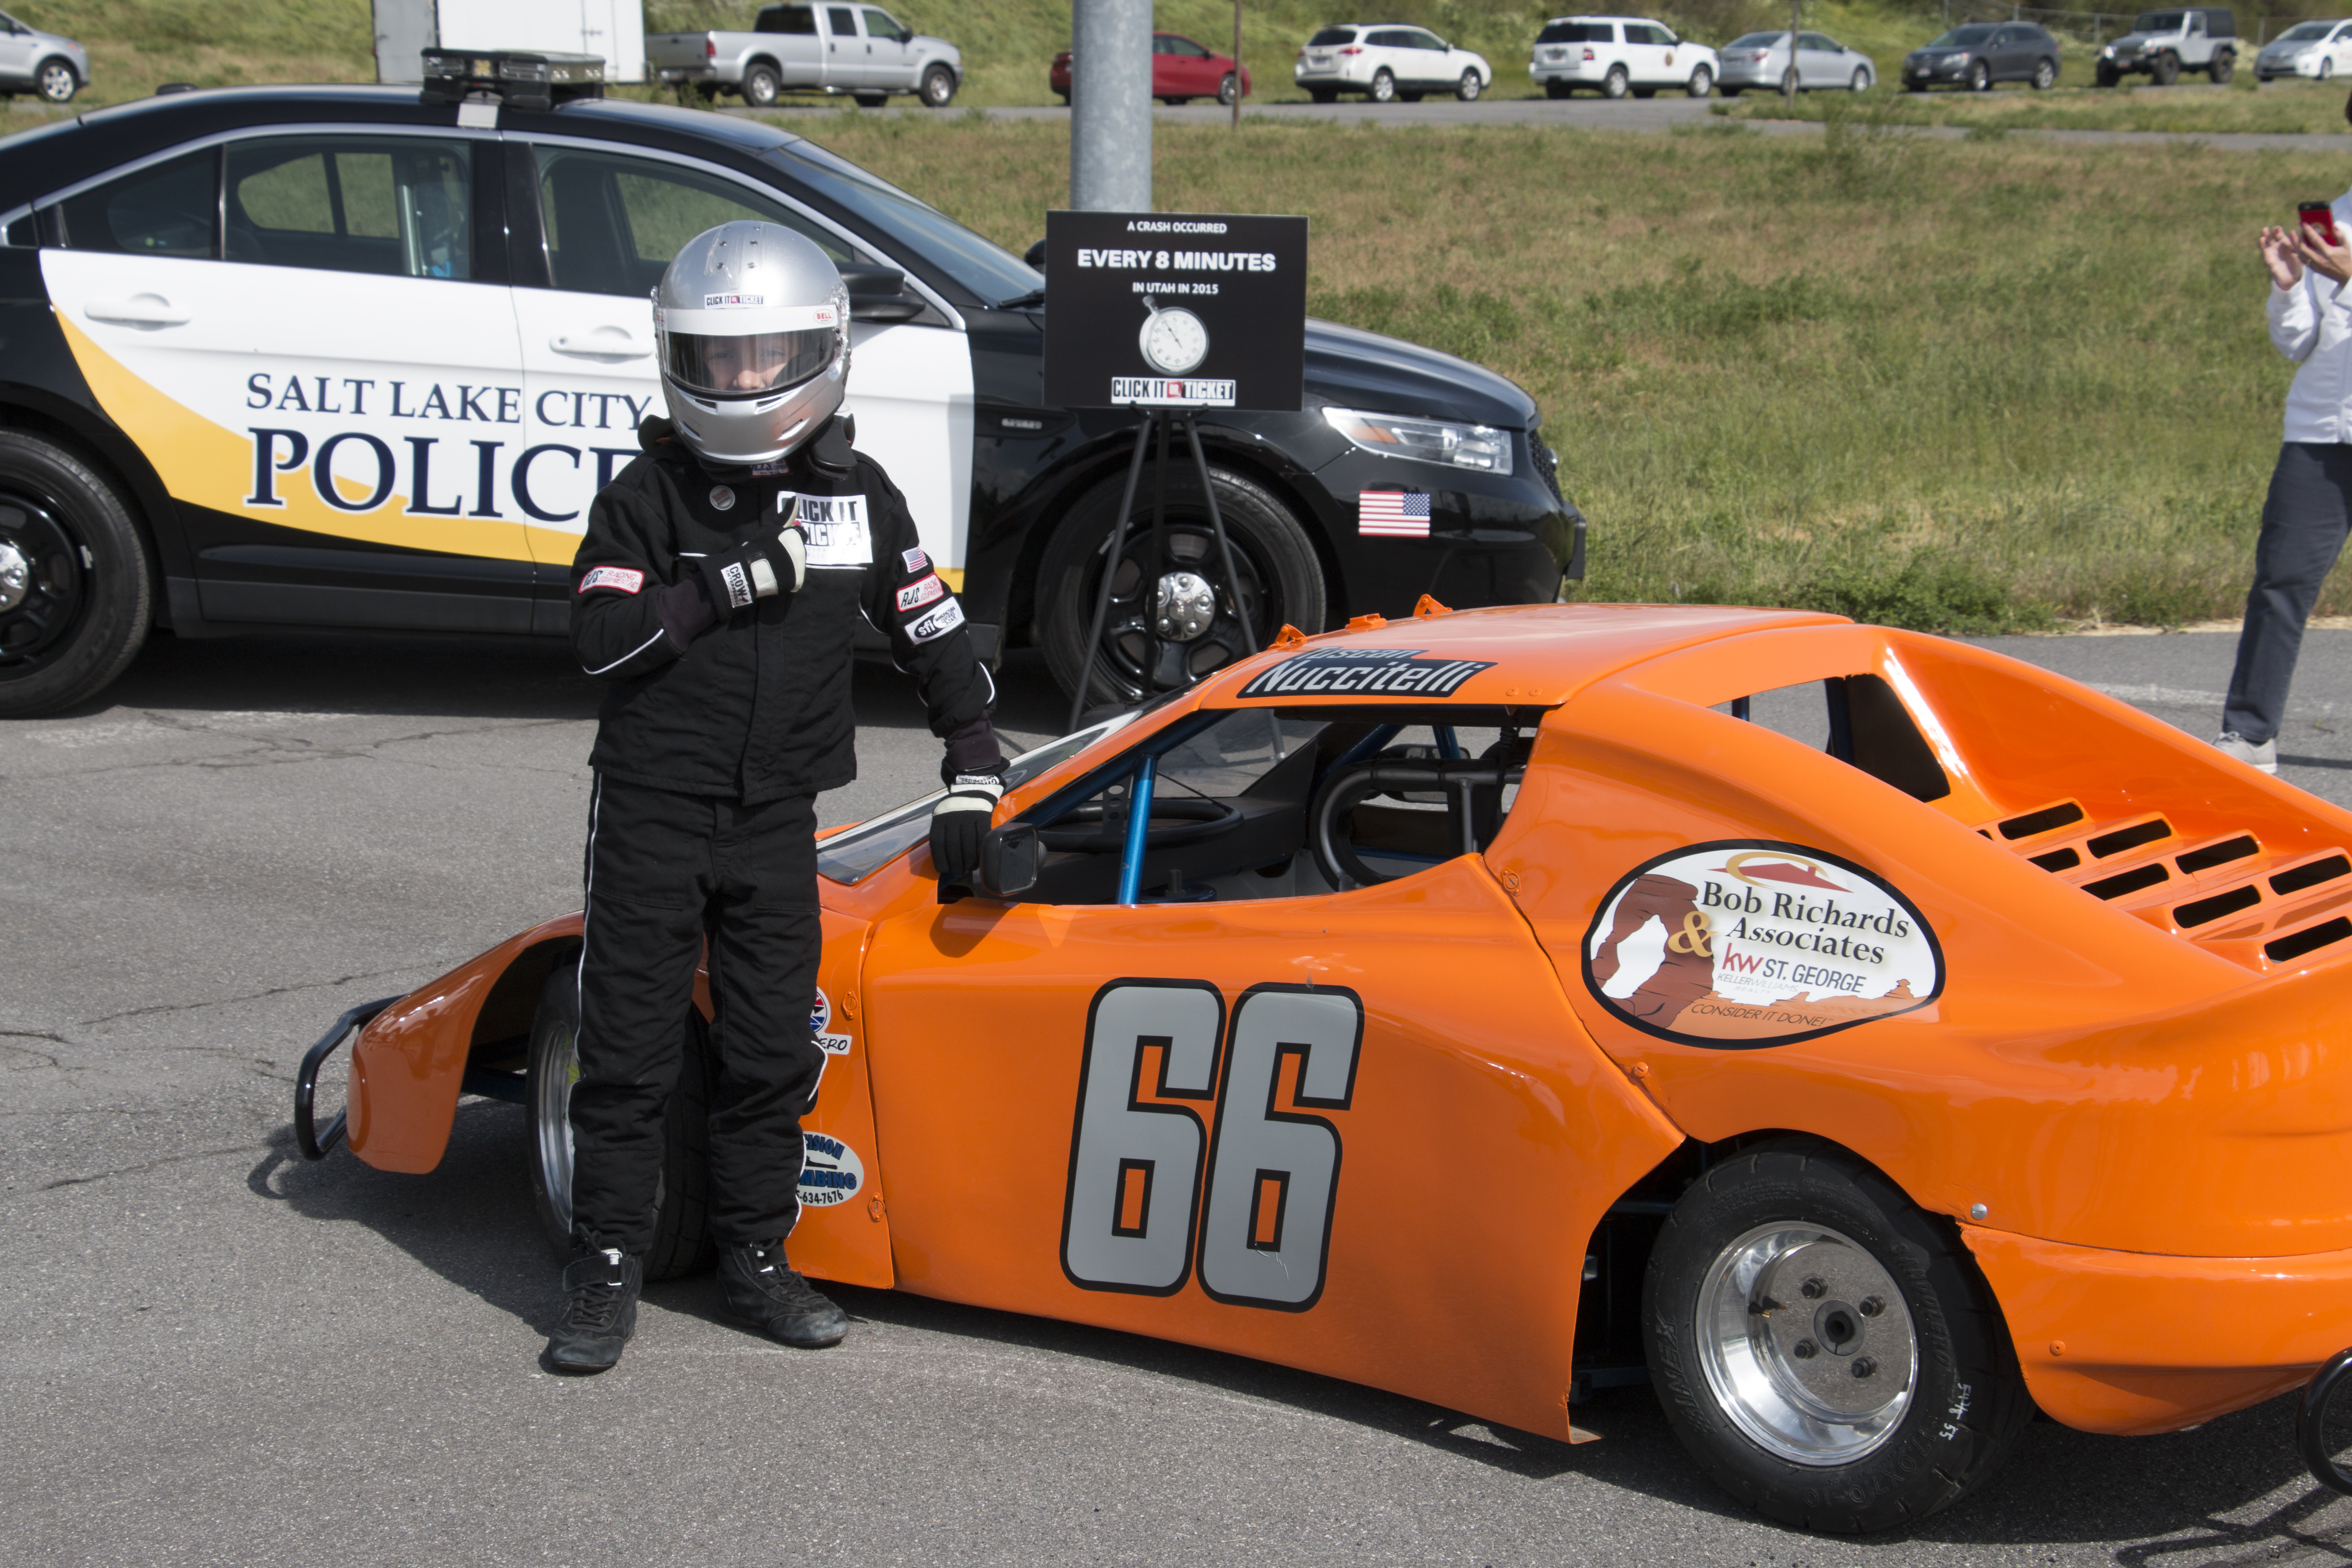 Tuscan Nuccitelli gives a thumbs up standing by his race car.